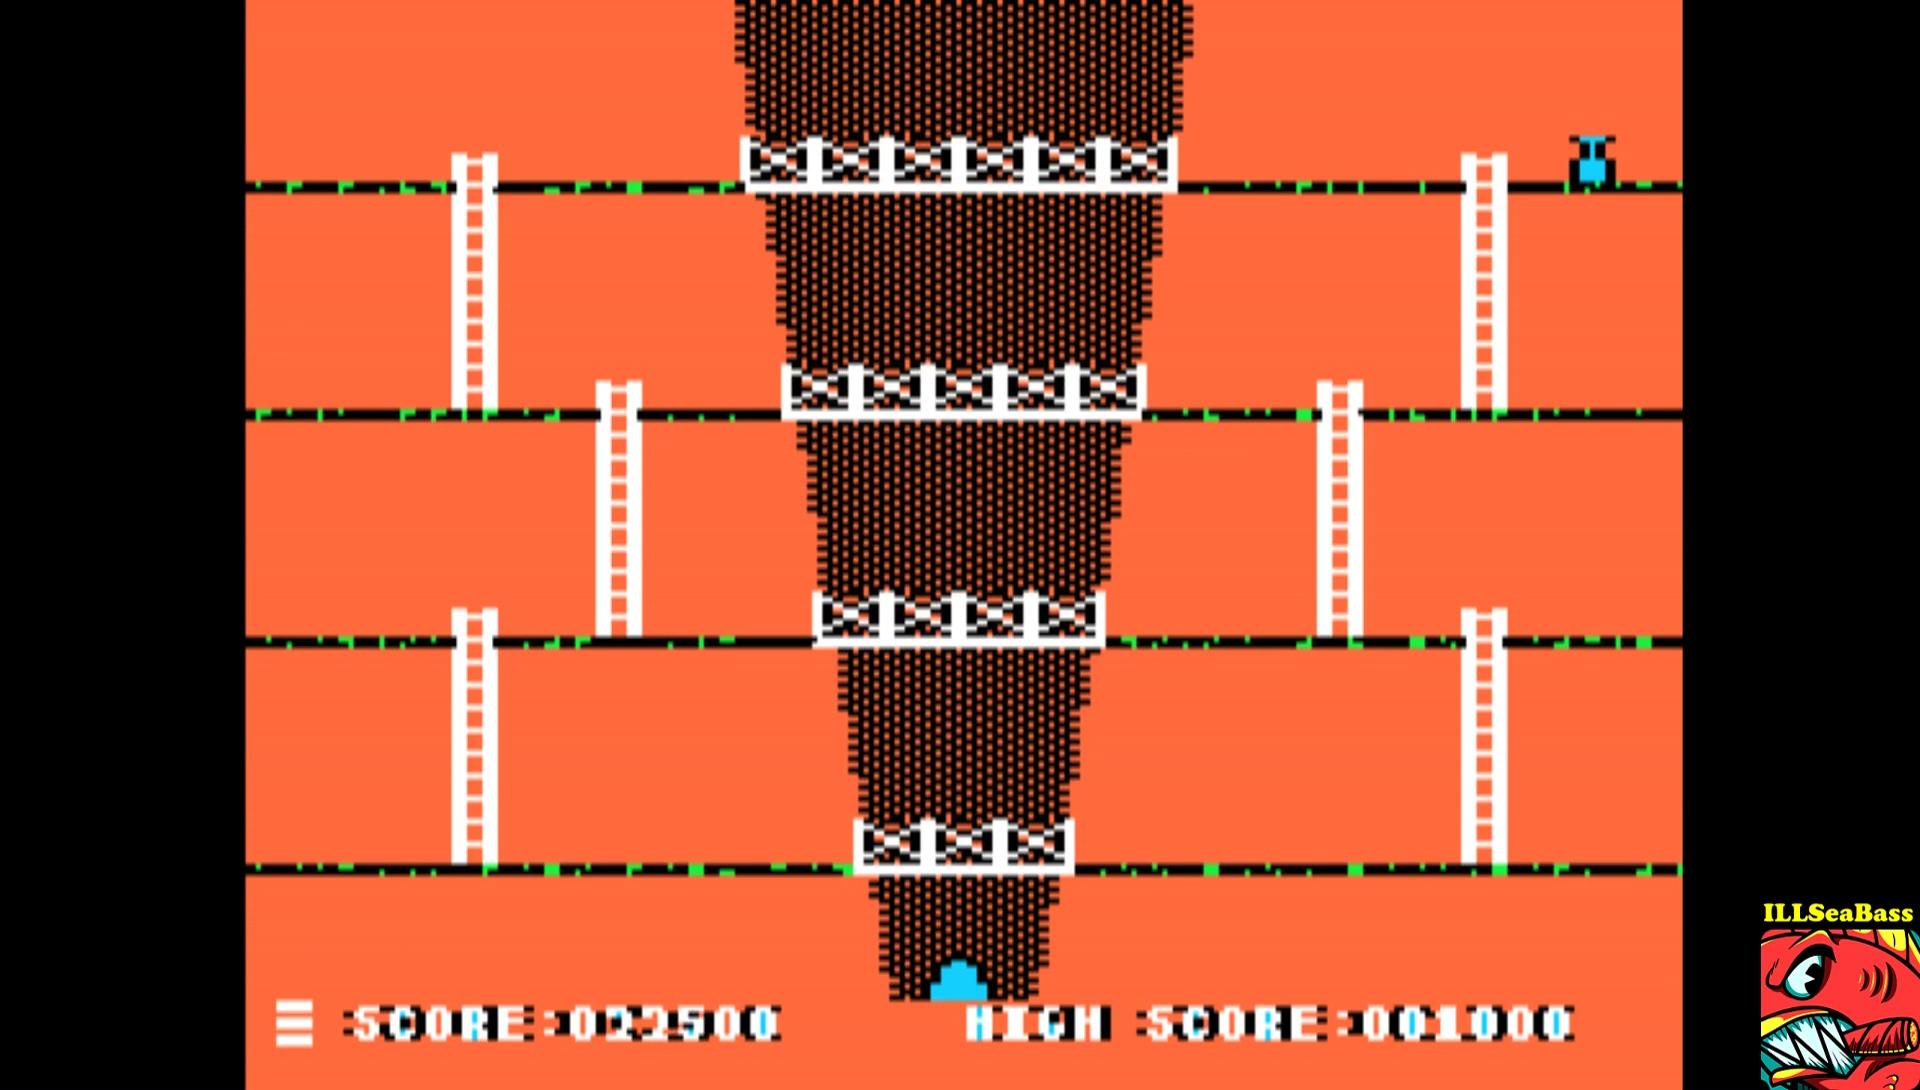 ILLSeaBass: Canyon Climber (Apple II Emulated) 22,500 points on 2017-03-25 22:07:07